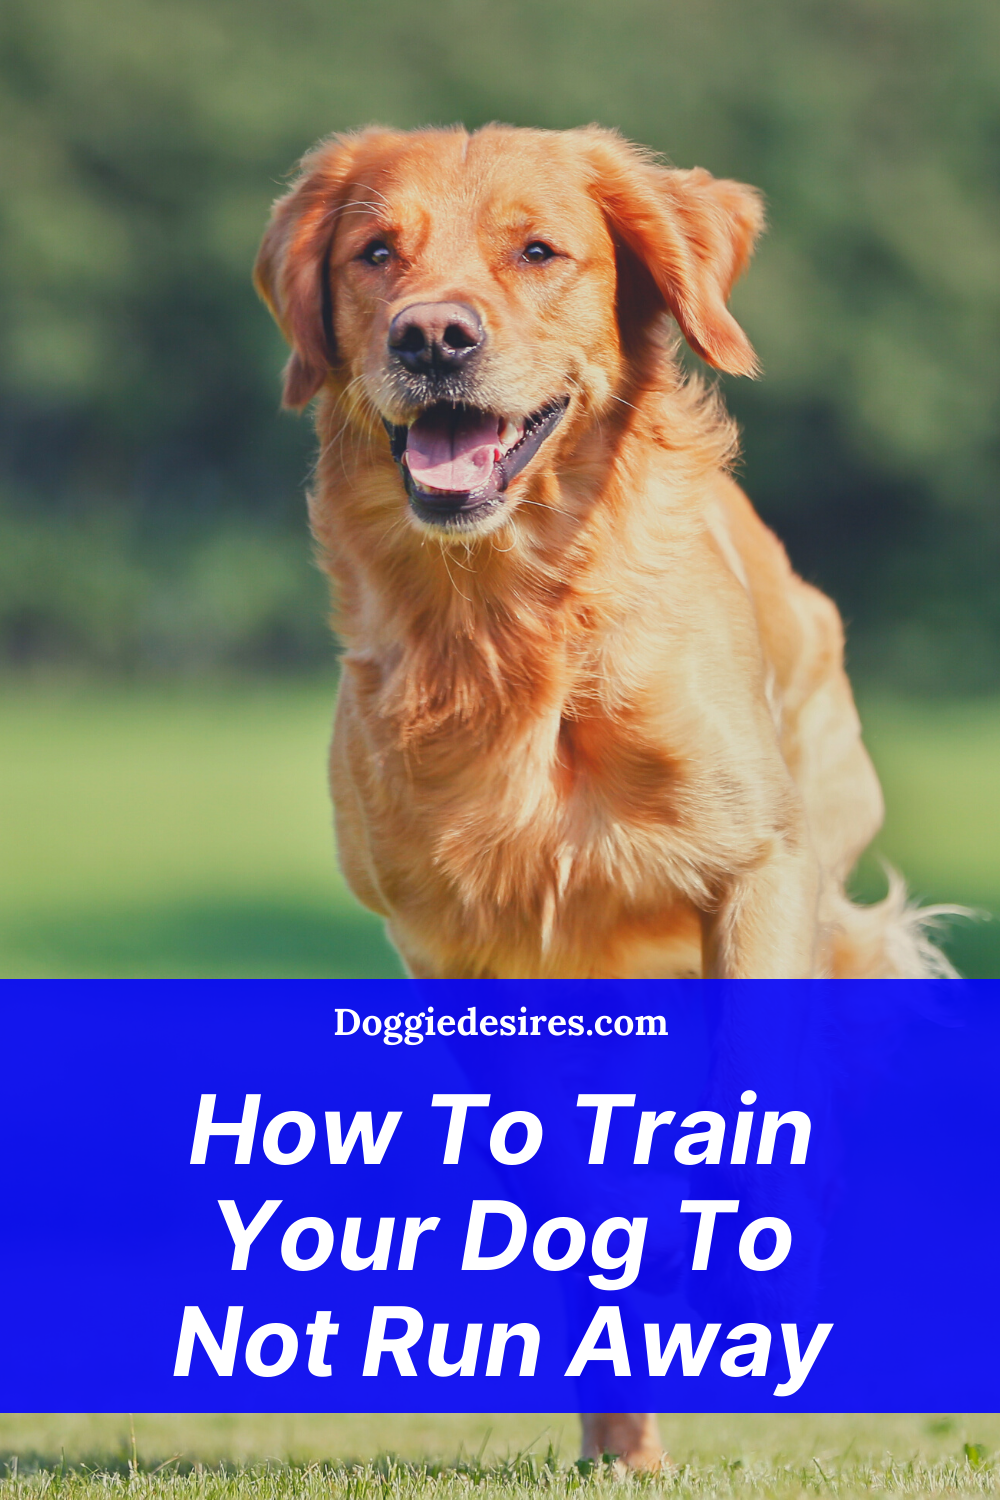 How To Train Your Dog To Not Run Away In 2020 Training Your Dog Dogs Dog Care